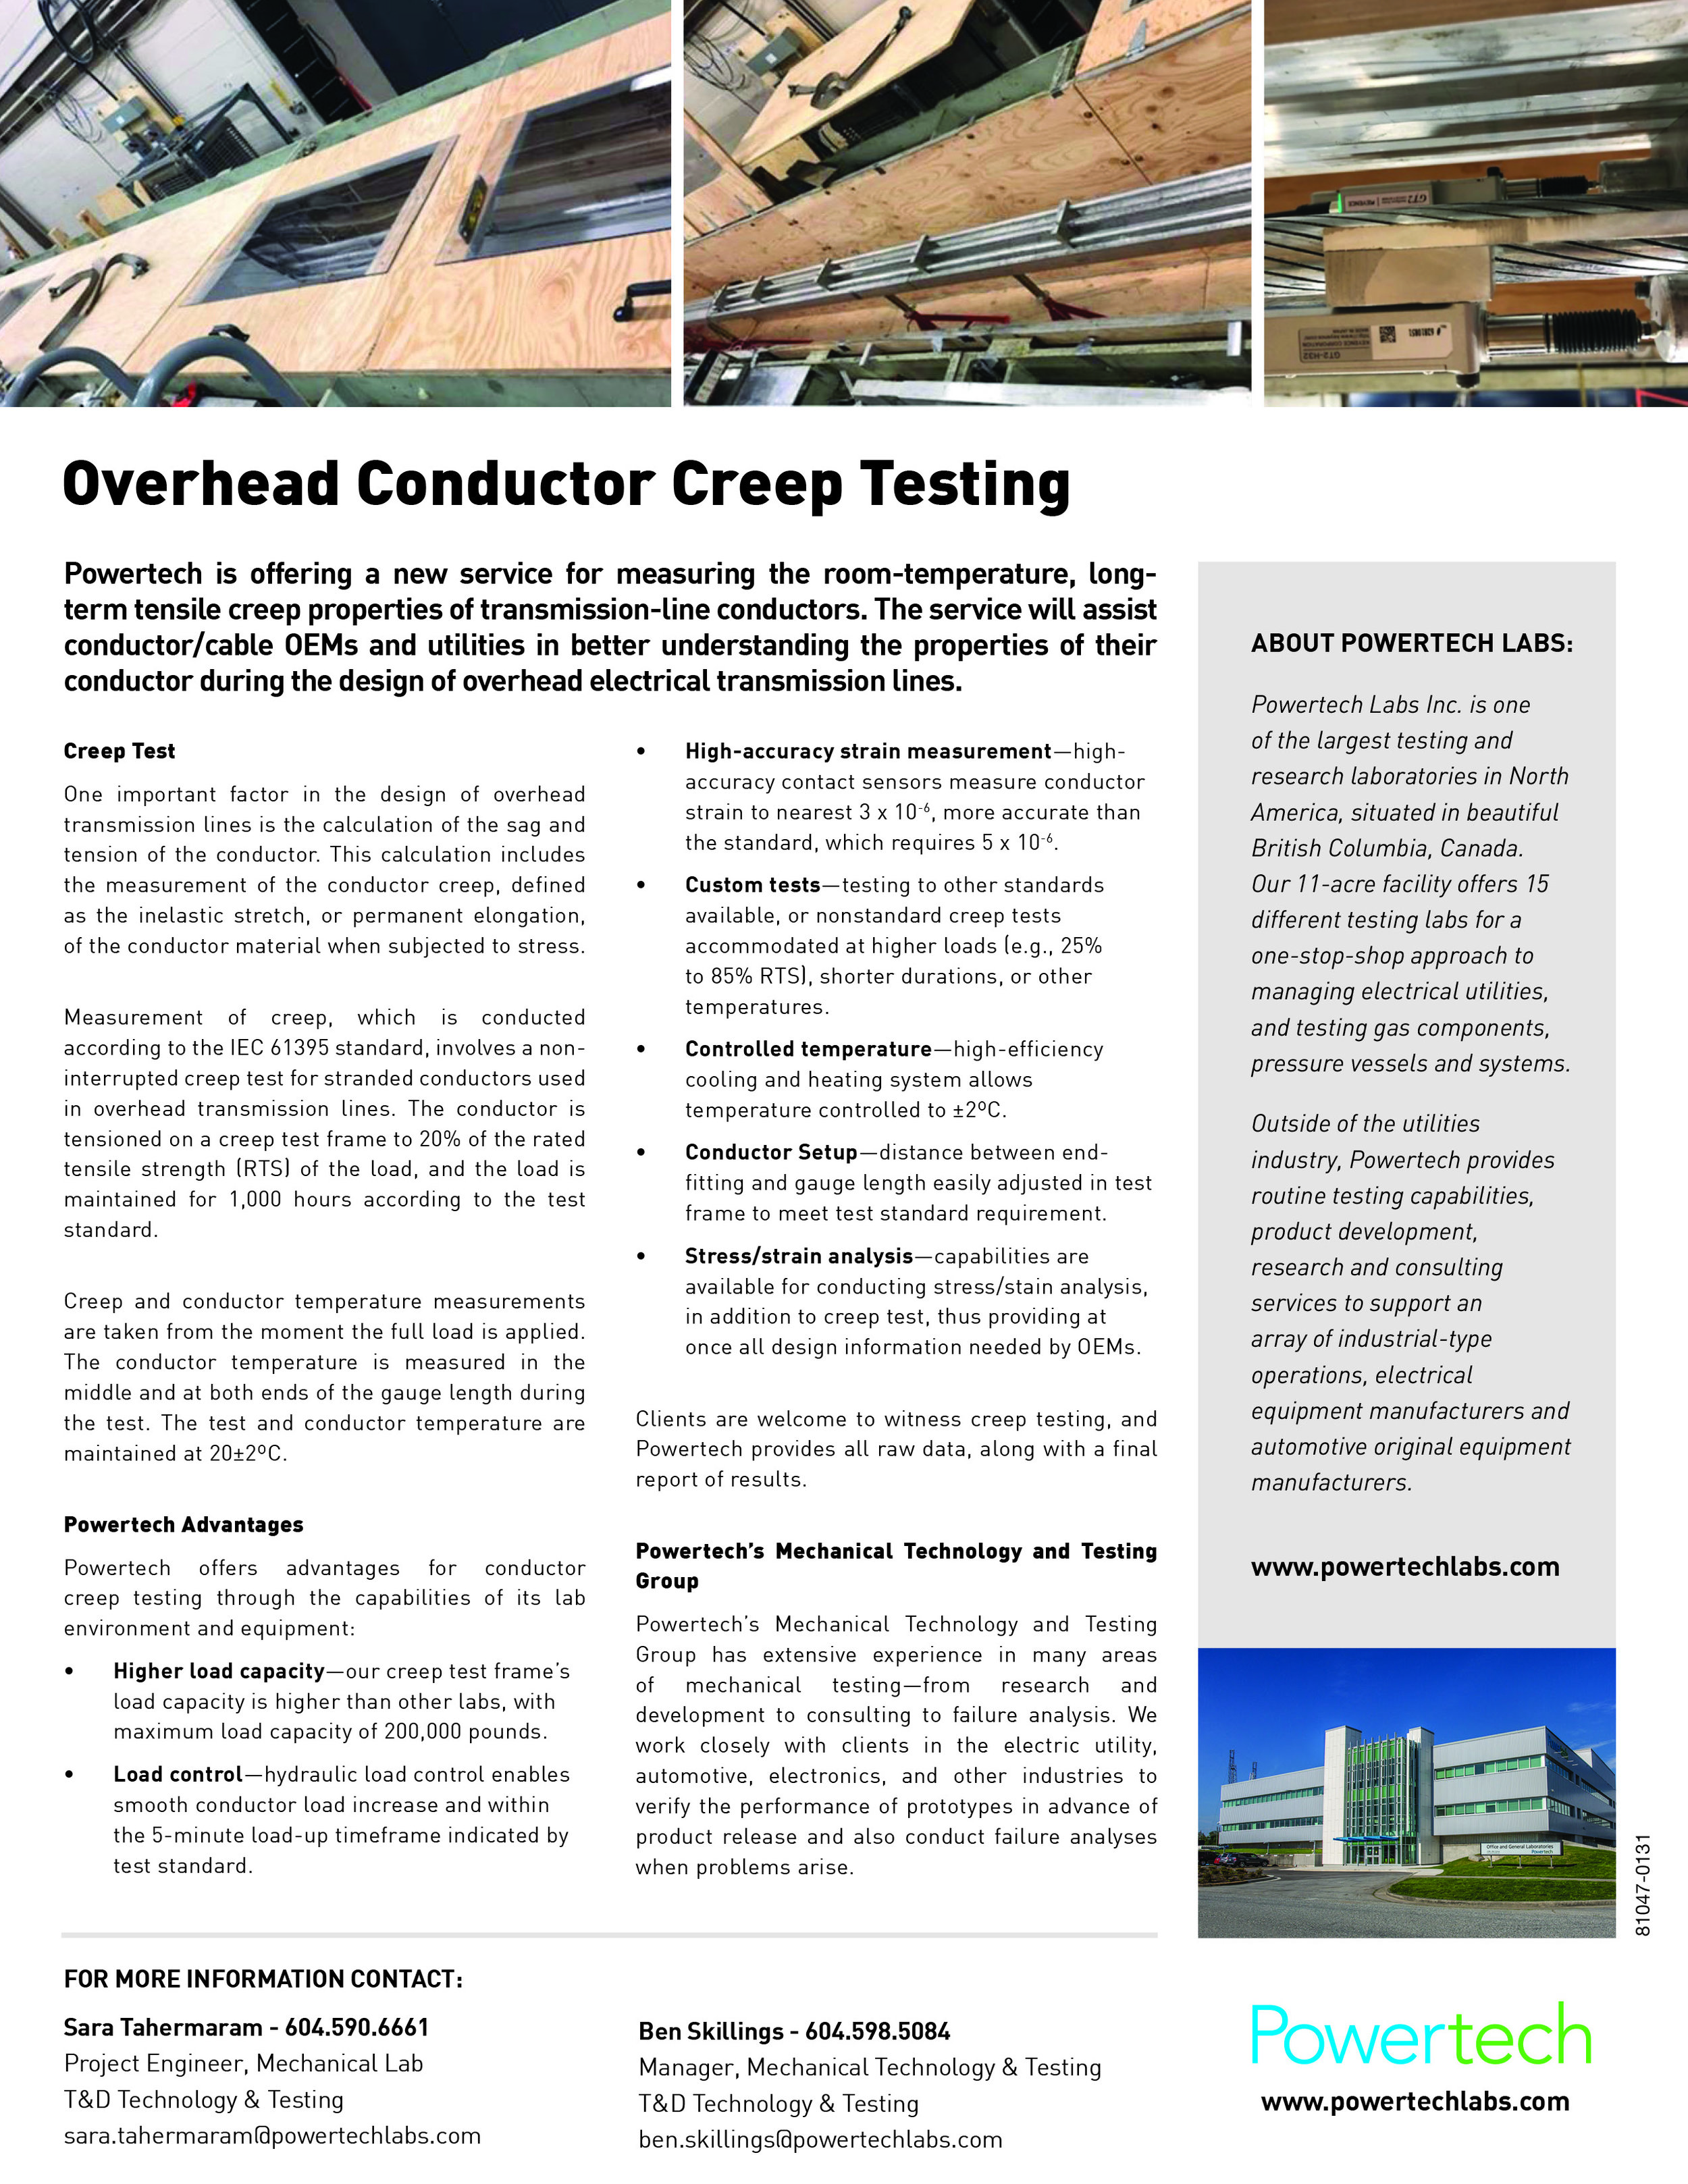 OVERHEAD CONDUCTOR CREEP TESTING — Powertech Labs